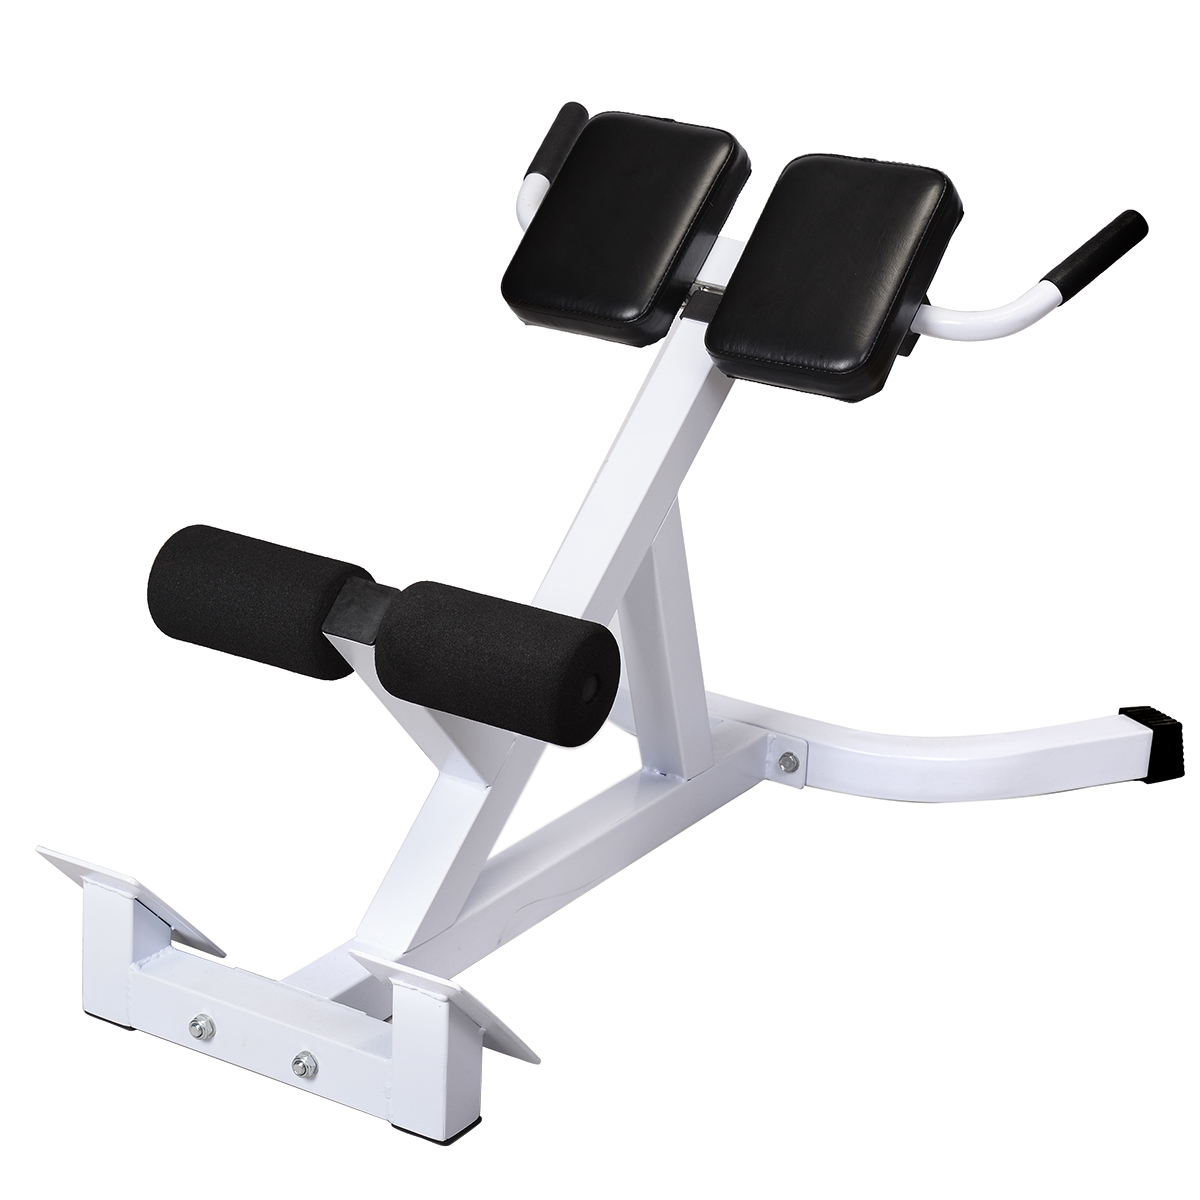 Costway Extension Hyperextension Back Exercise AB Bench G...